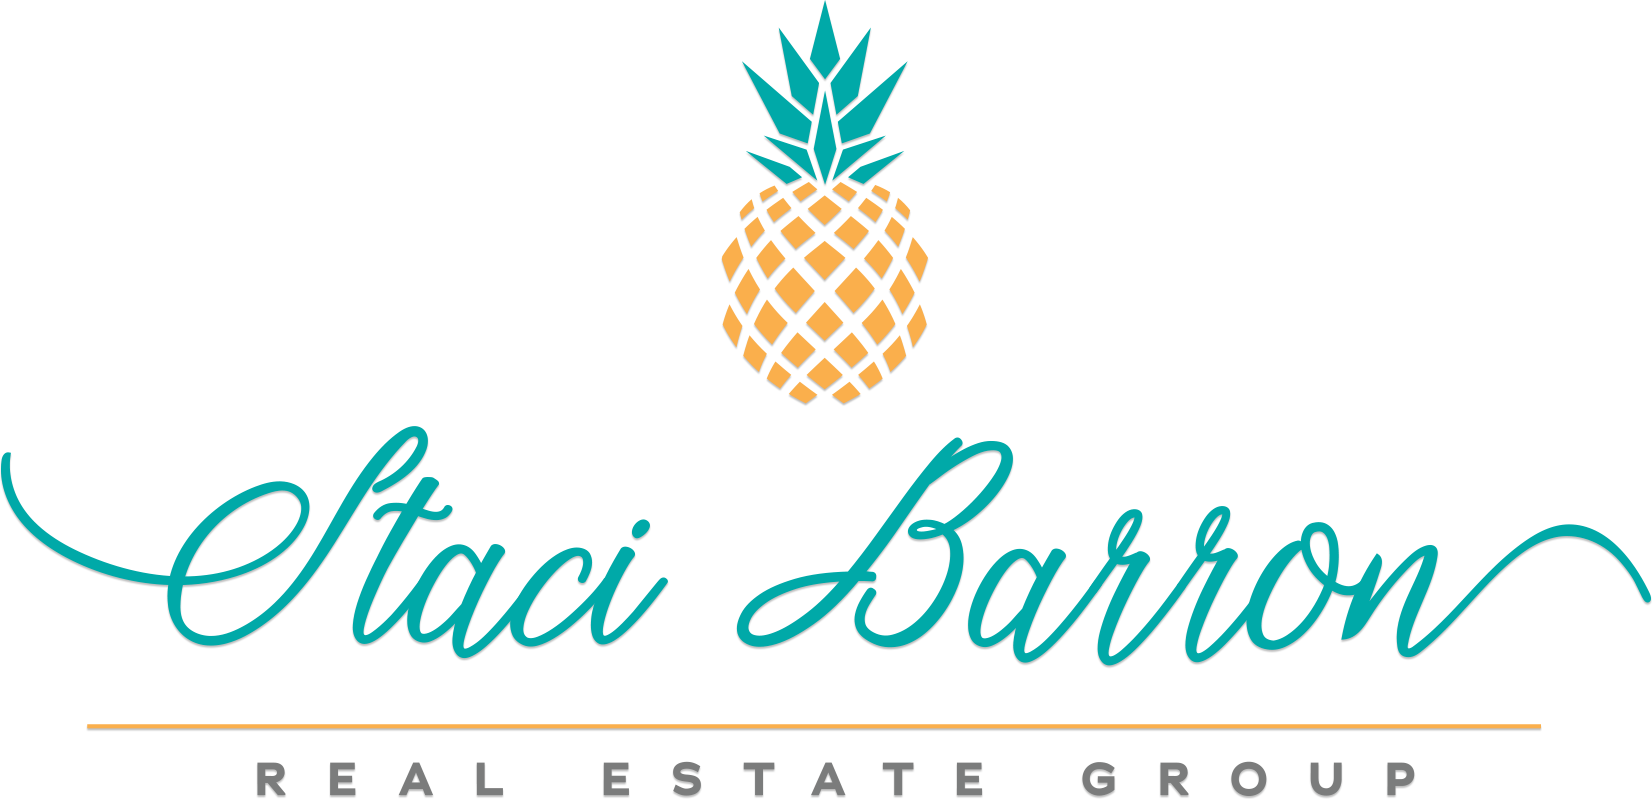 Staci Barron Real Estate Group